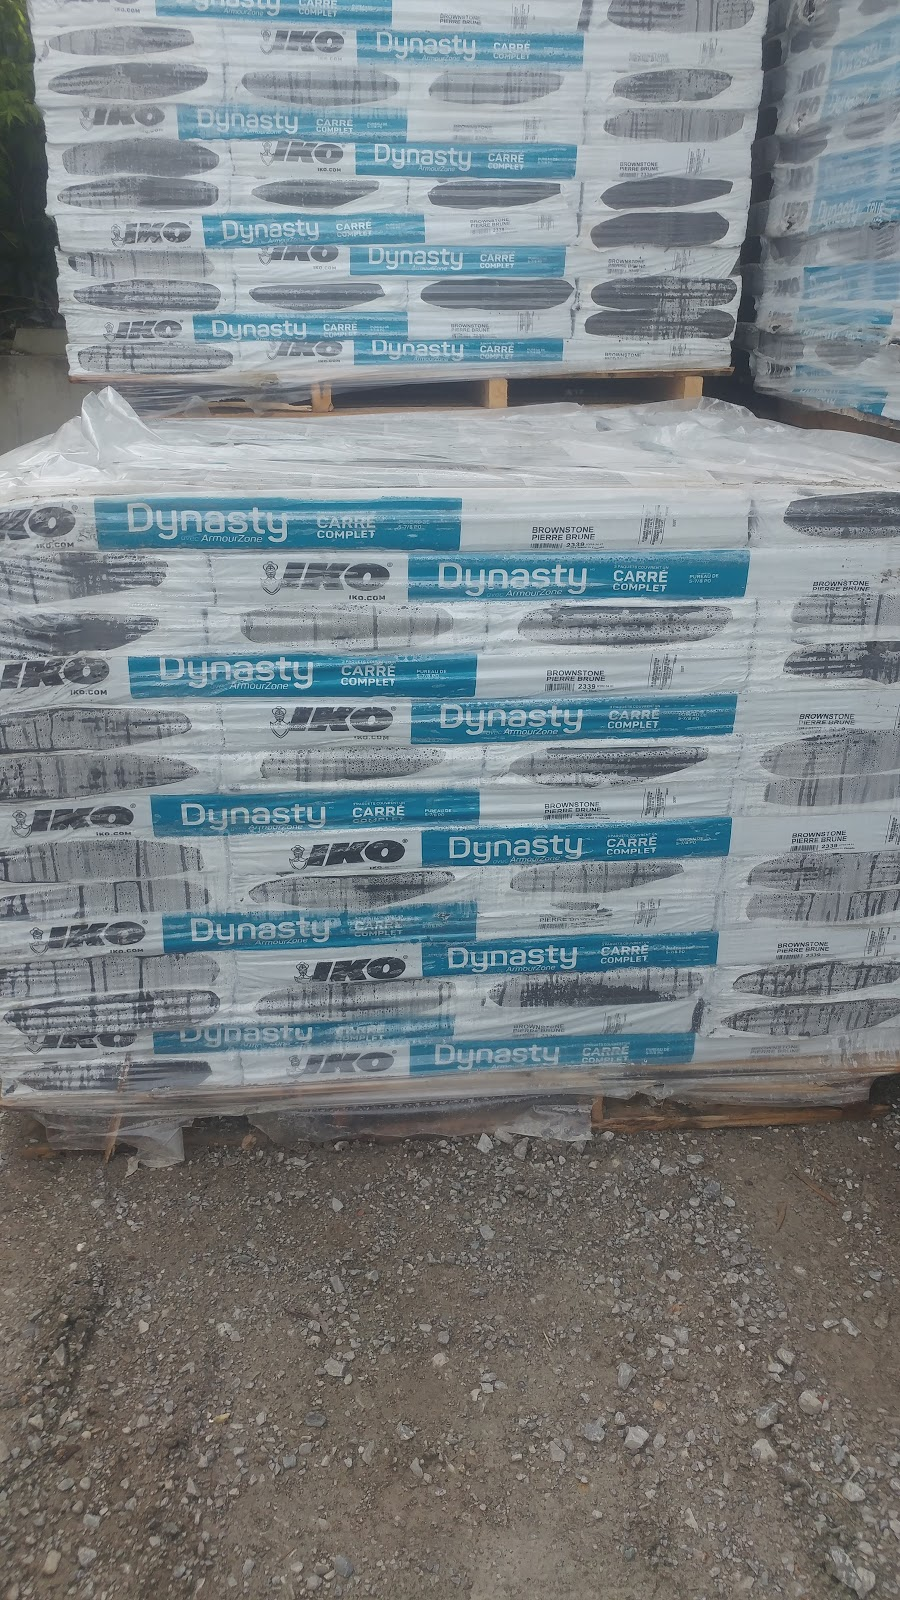 D & Cees Roofing Supplies Inc   store   78 Summit Ave, York, ON M6E 1X7, Canada   4166527330 OR +1 416-652-7330